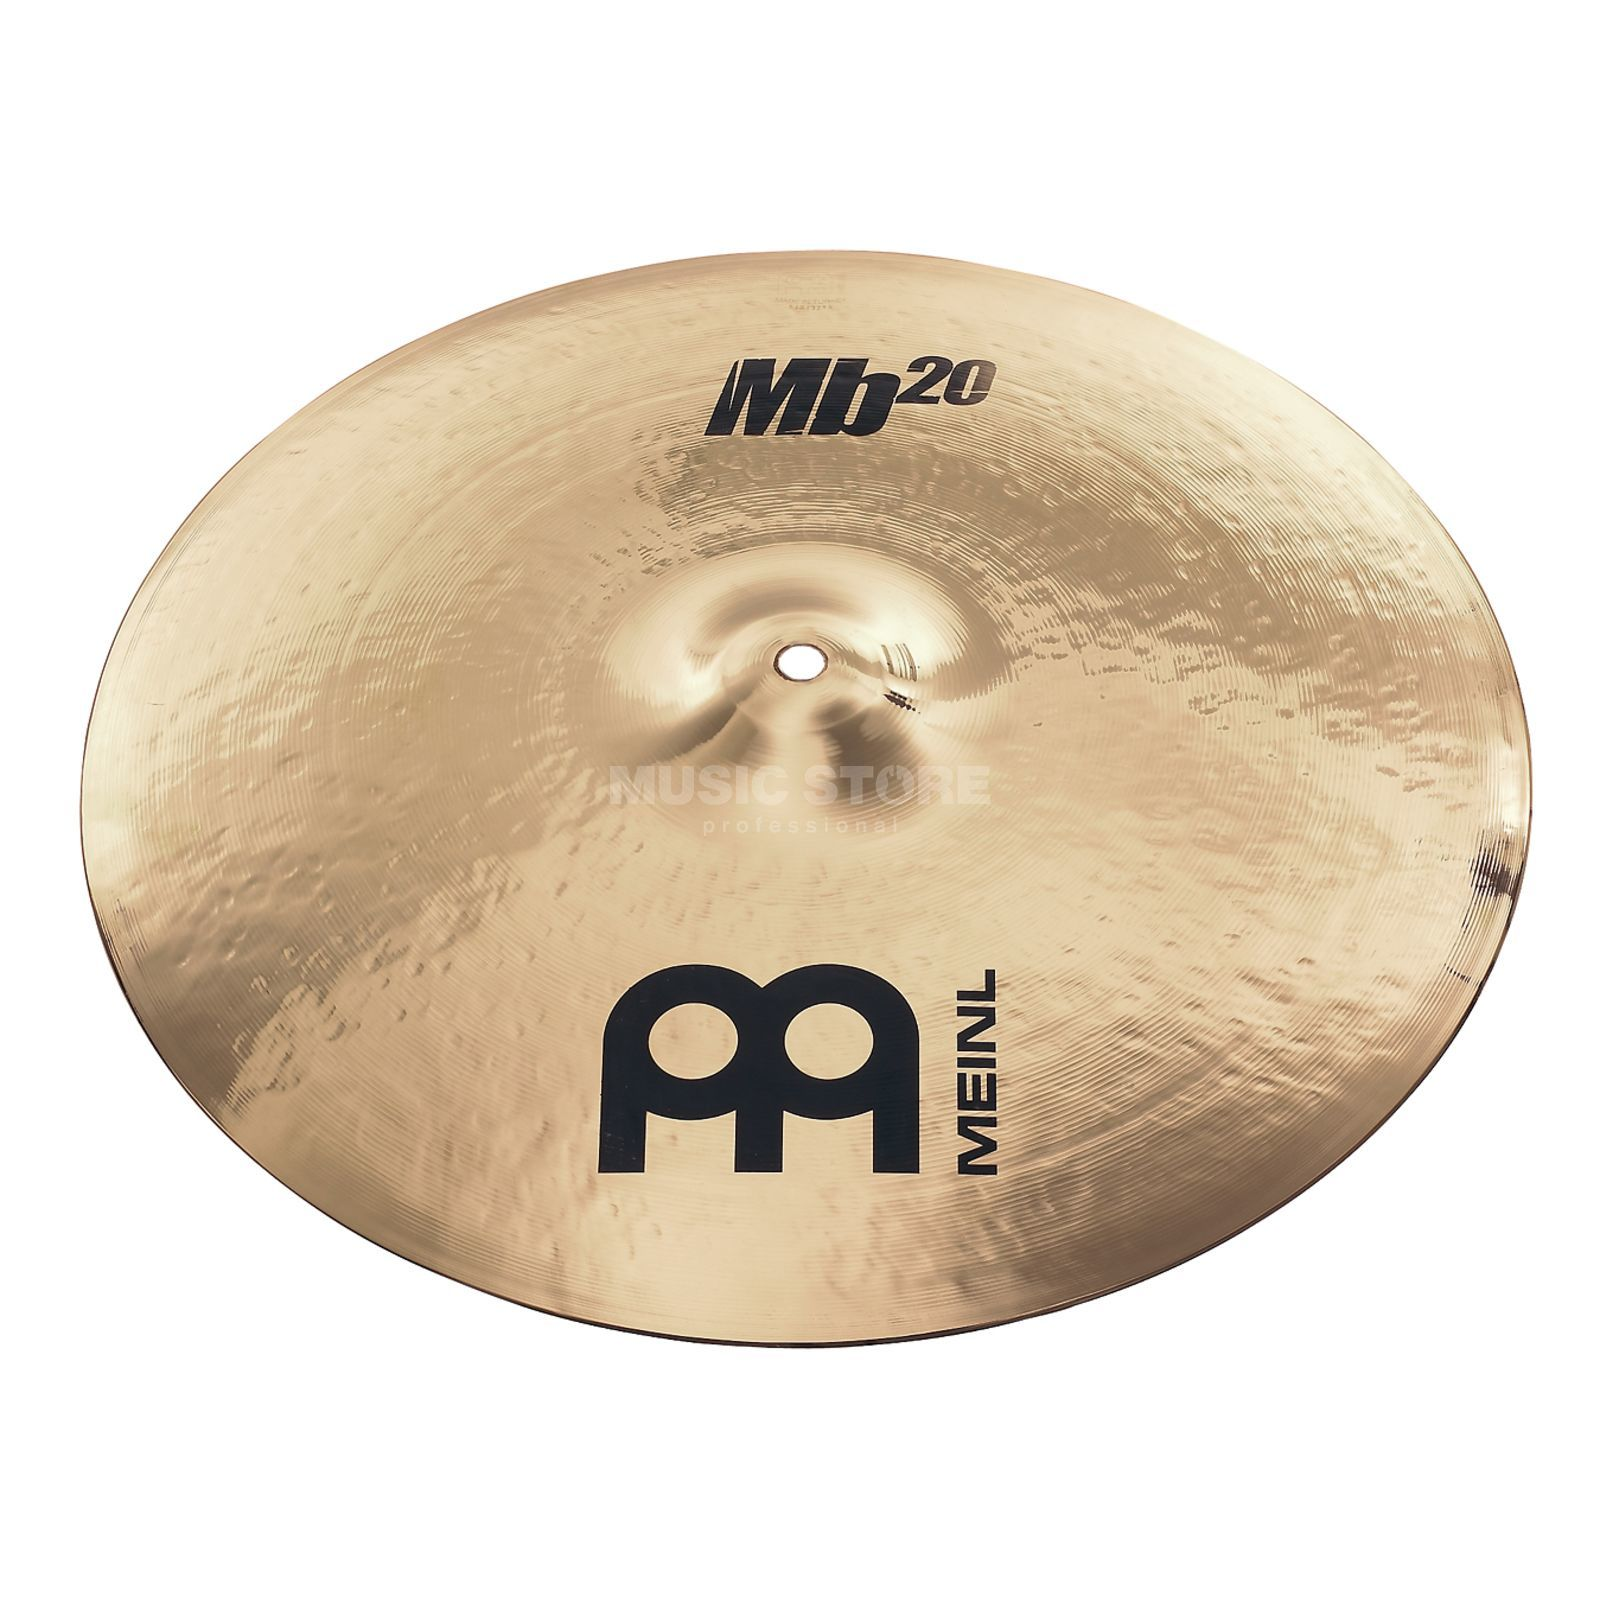 "Meinl MB20 Heavy Crash 22"", MB20-22HC-B, Brilliant Finish Produktbillede"